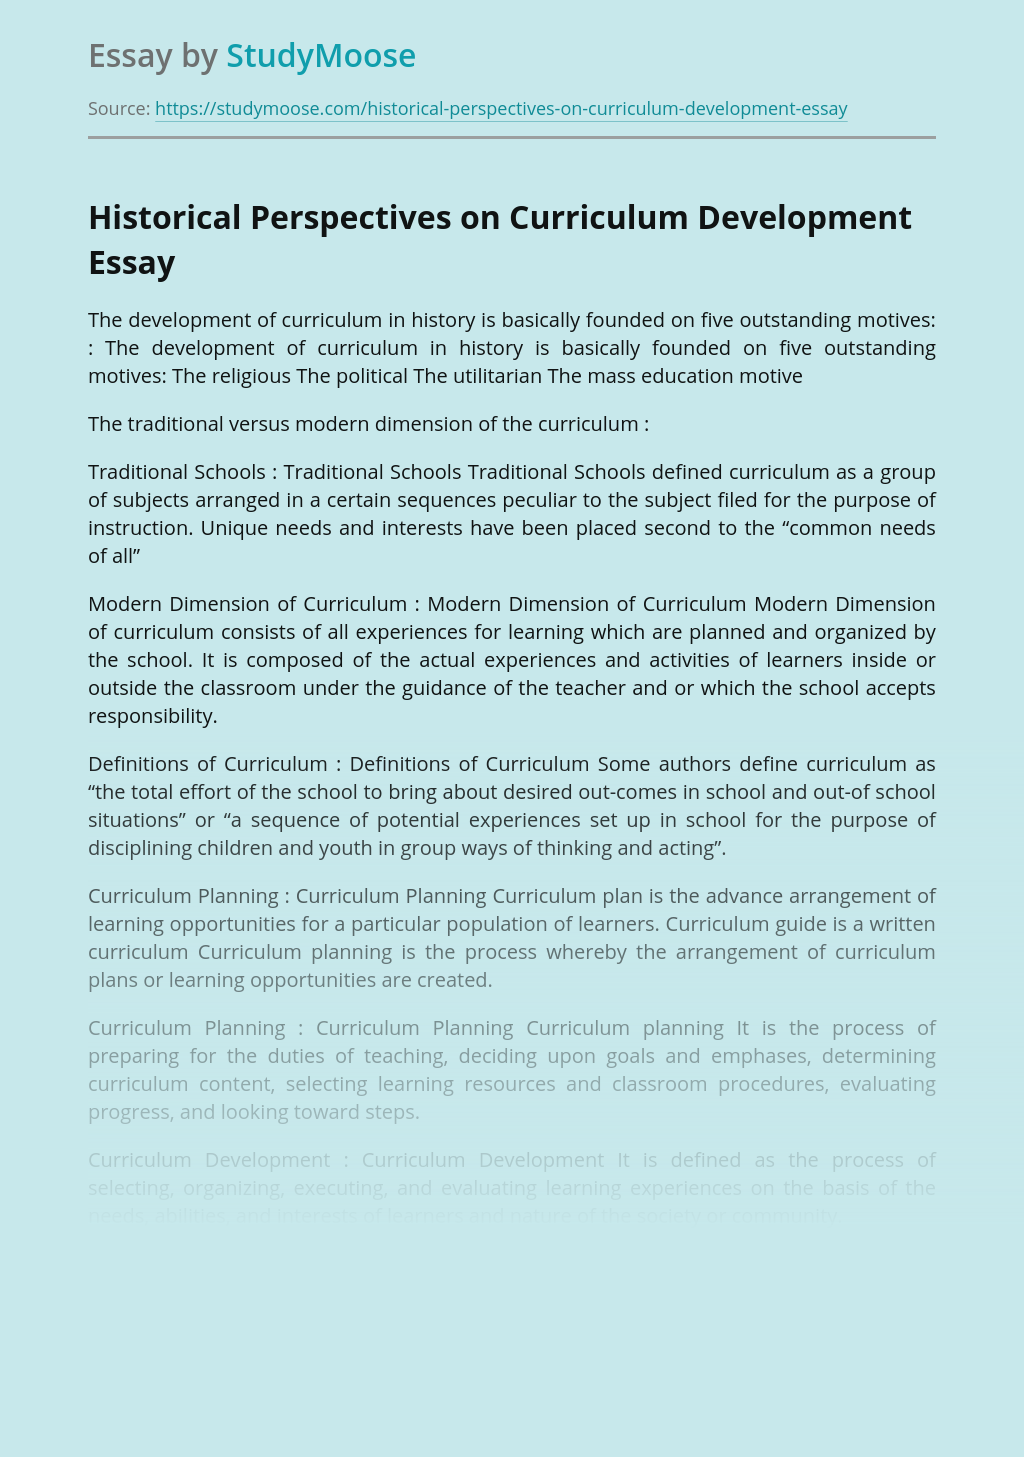 Historical Perspectives on Curriculum Development